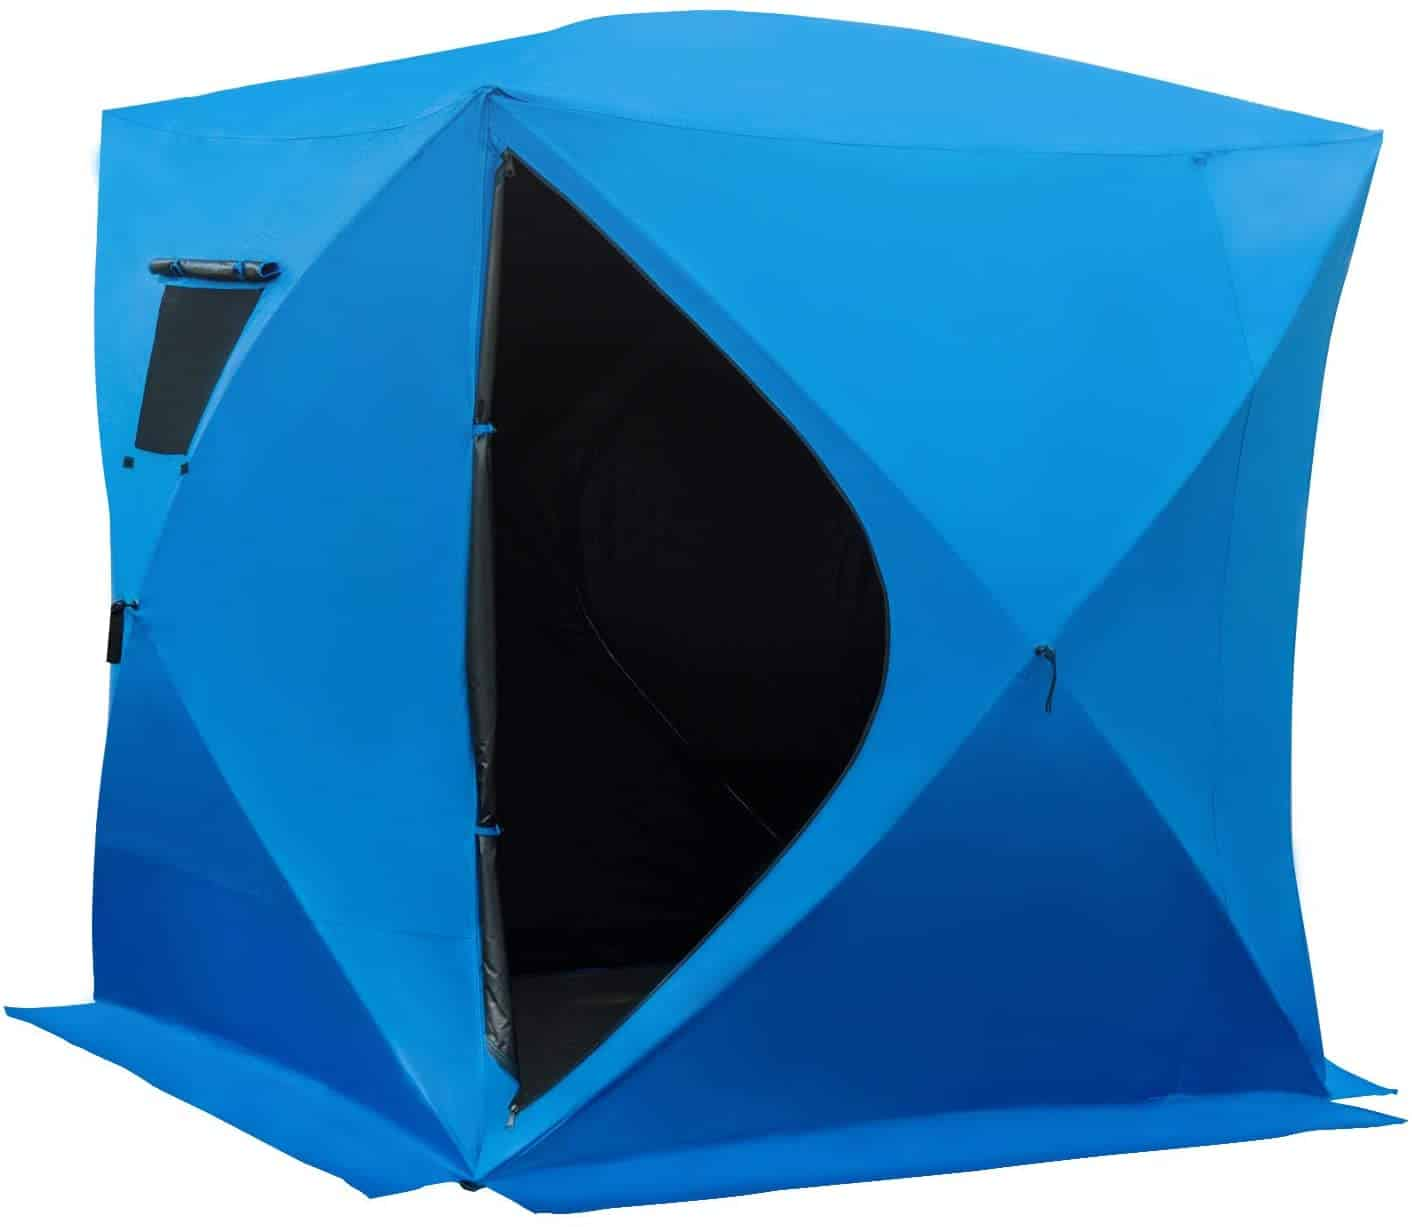 Waterproof Portable Pop-Up Ice Fishing Shelter by Outsunny